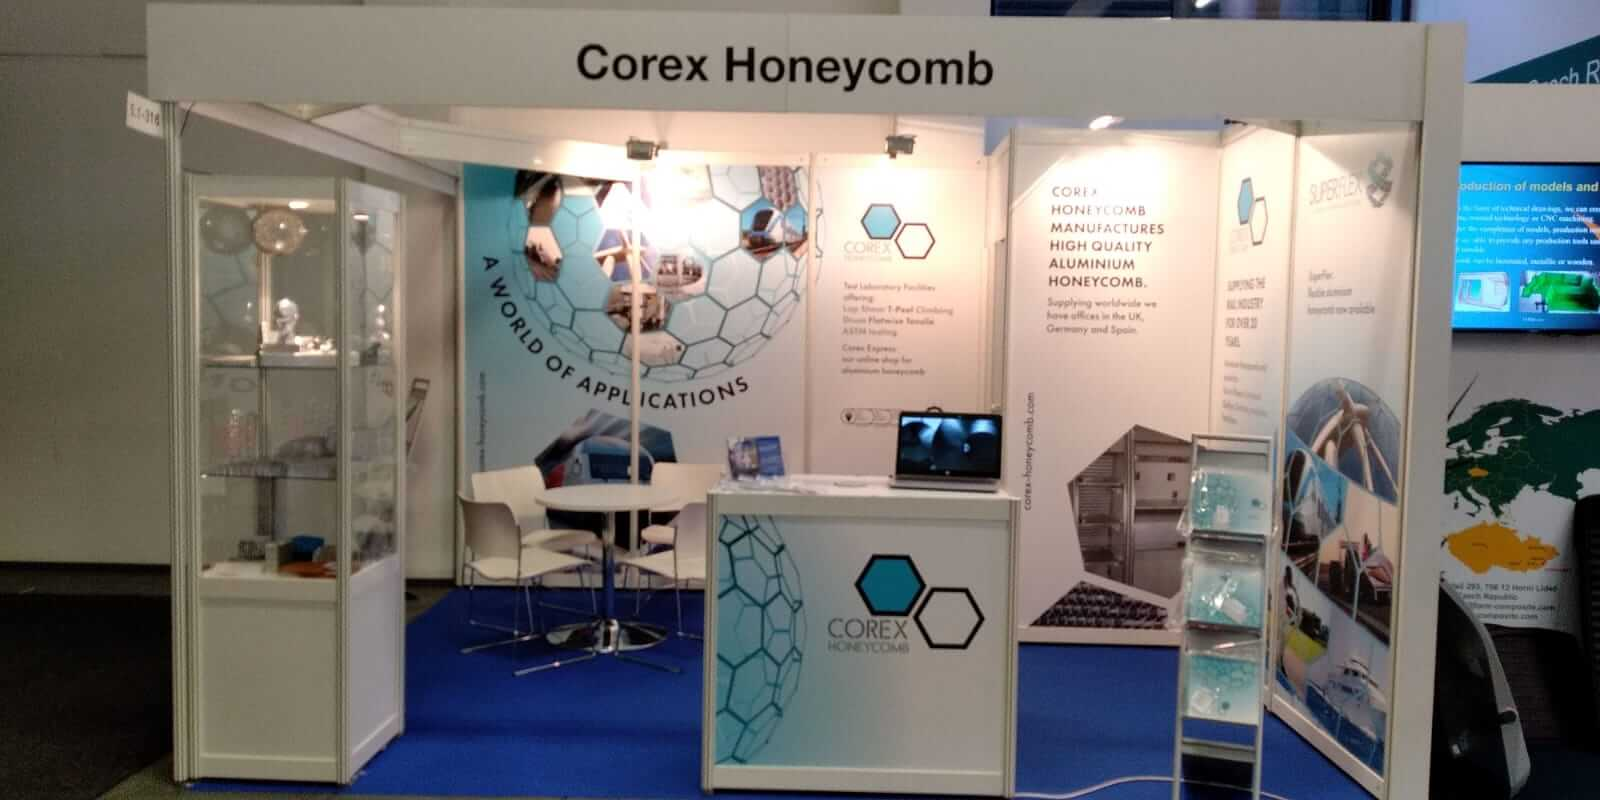 Corex Honeycomb Exhibitions 2019